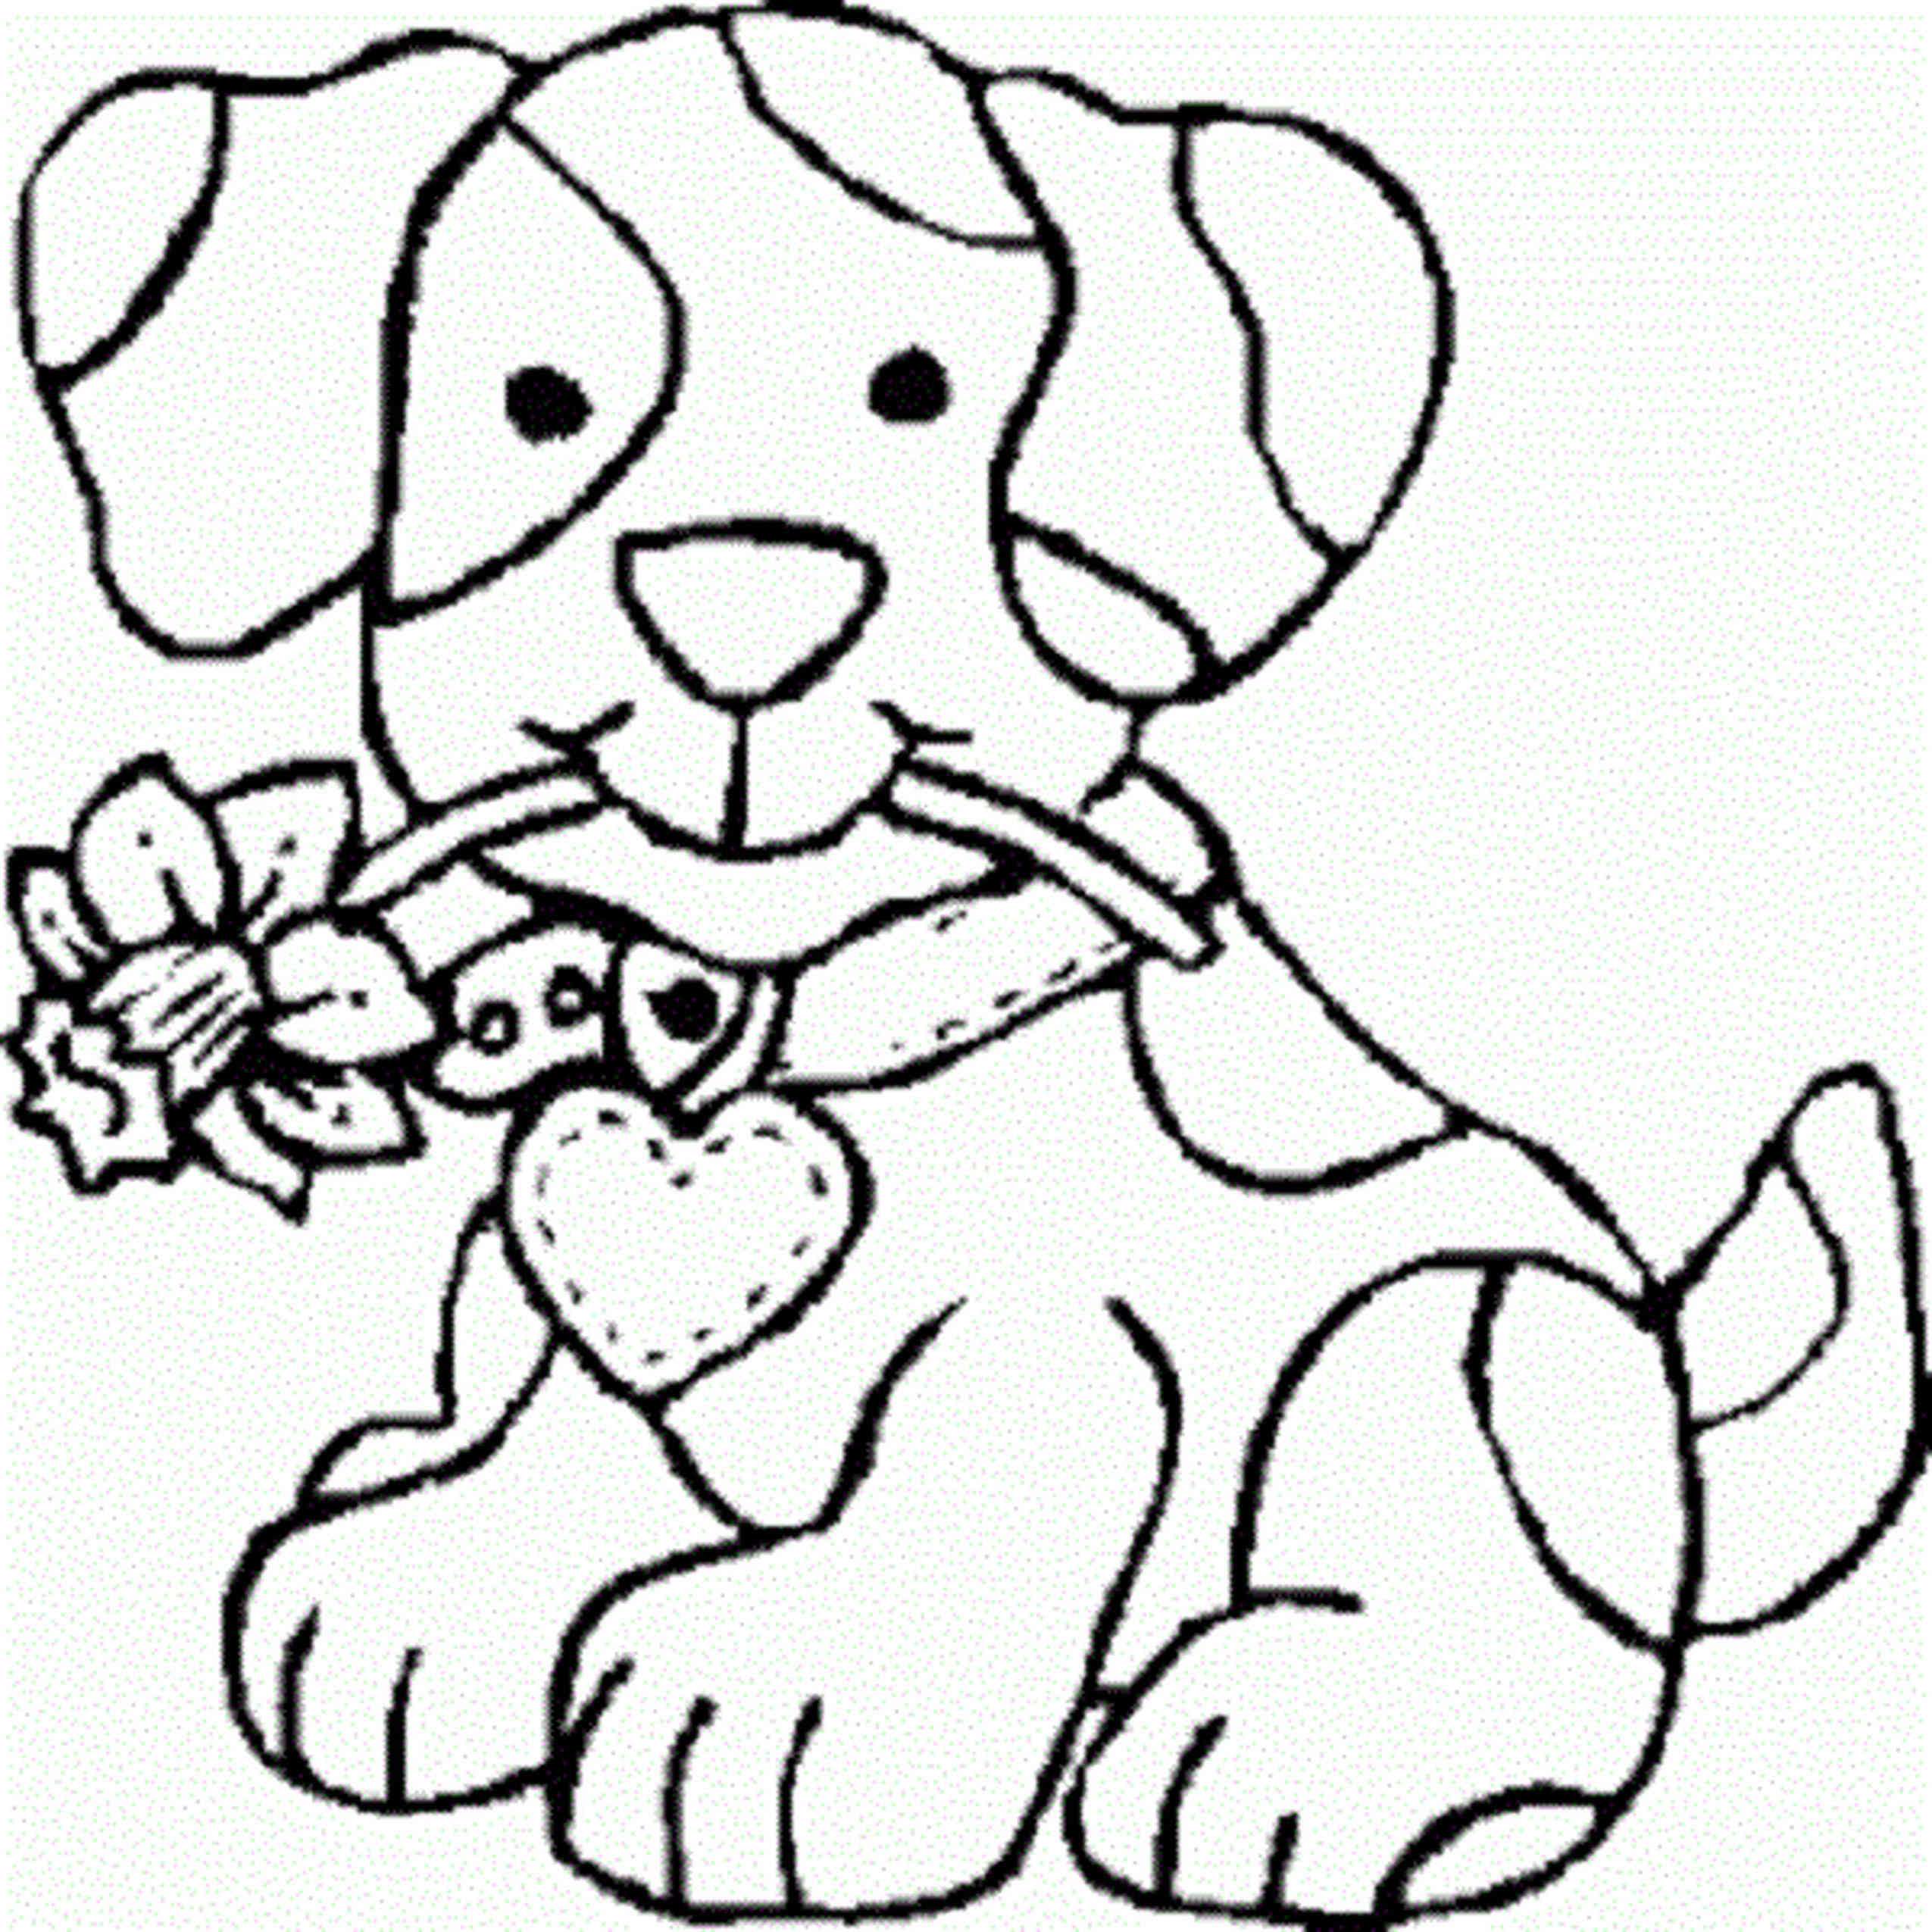 2550x2550 Cute Penguin Coloring Pages Latest Cute Ladybug Coloring Pages